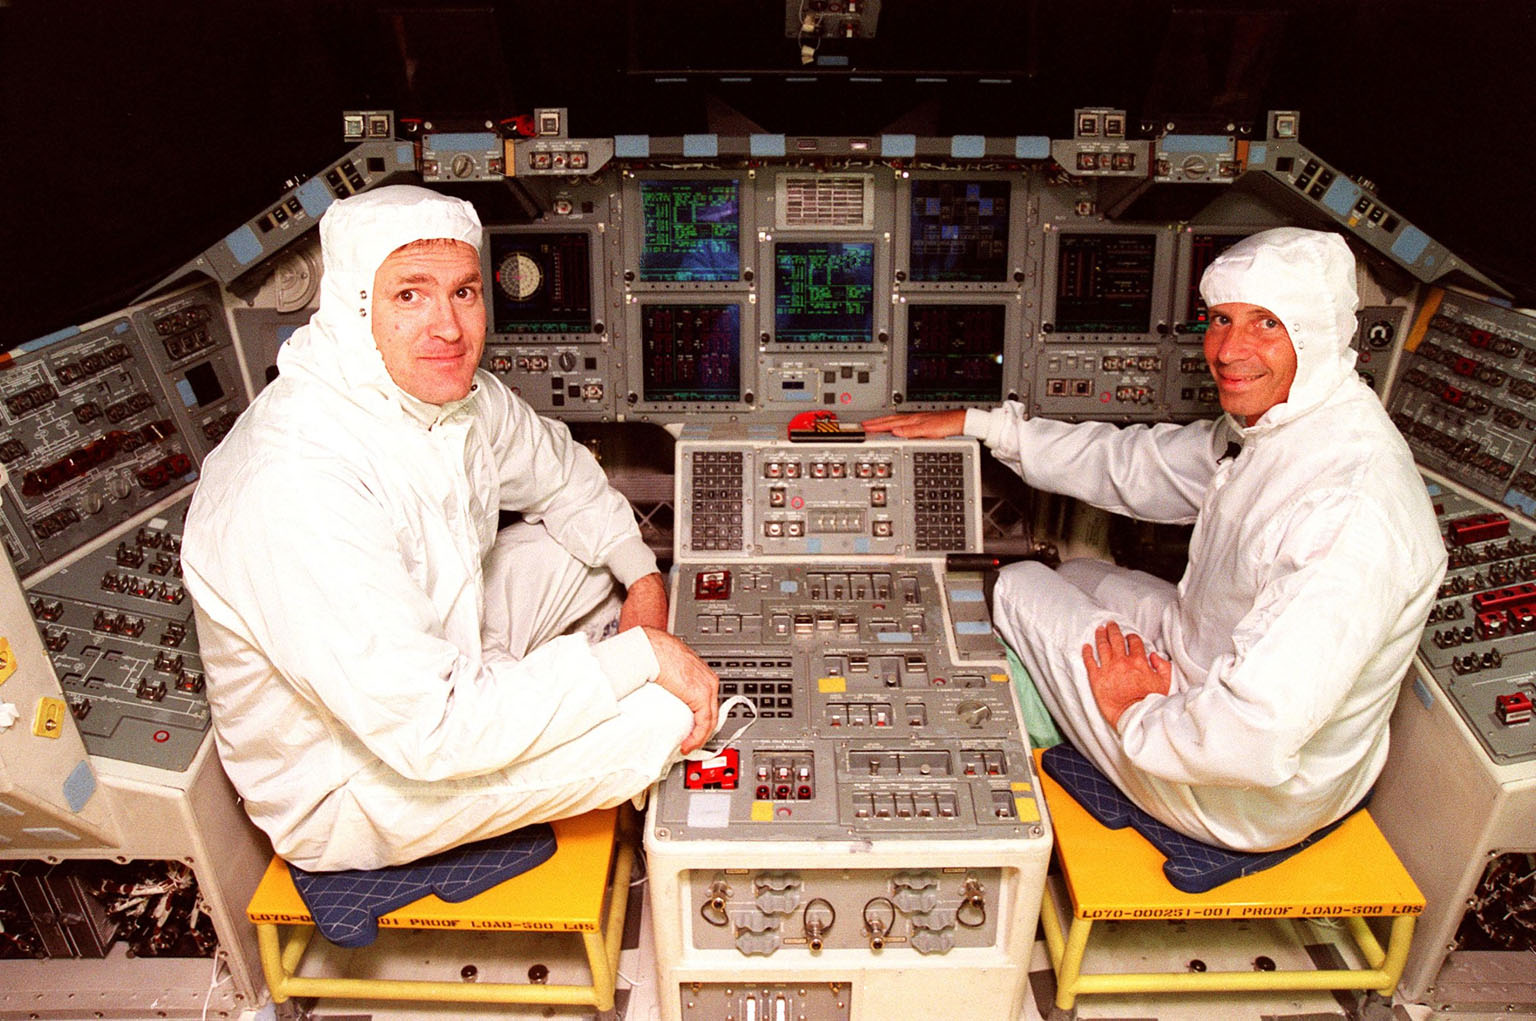 STS-101 Commander James Halsell (left) and STS-98 Commander Ken Cockrell (right) pause for a photo while looking over the recently installed Multifunction Electronic Display Subsystem (MEDS) in the cockpit of the orbiter Atlantis. The new full-color, flat panel MEDS improves crew/orbiter interaction with easy-to-read, graphic portrayals of key flight indicators like attitude display and mach speed. The installation makes Atlantis the most modern orbiter in the fleet and equals the systems on current commercial jet airliners and military aircraft. The first flight of the upgraded Atlantis is STS-101, scheduled for launch in December 1999; the second flight, STS-98, is scheduled for launch in April 2000